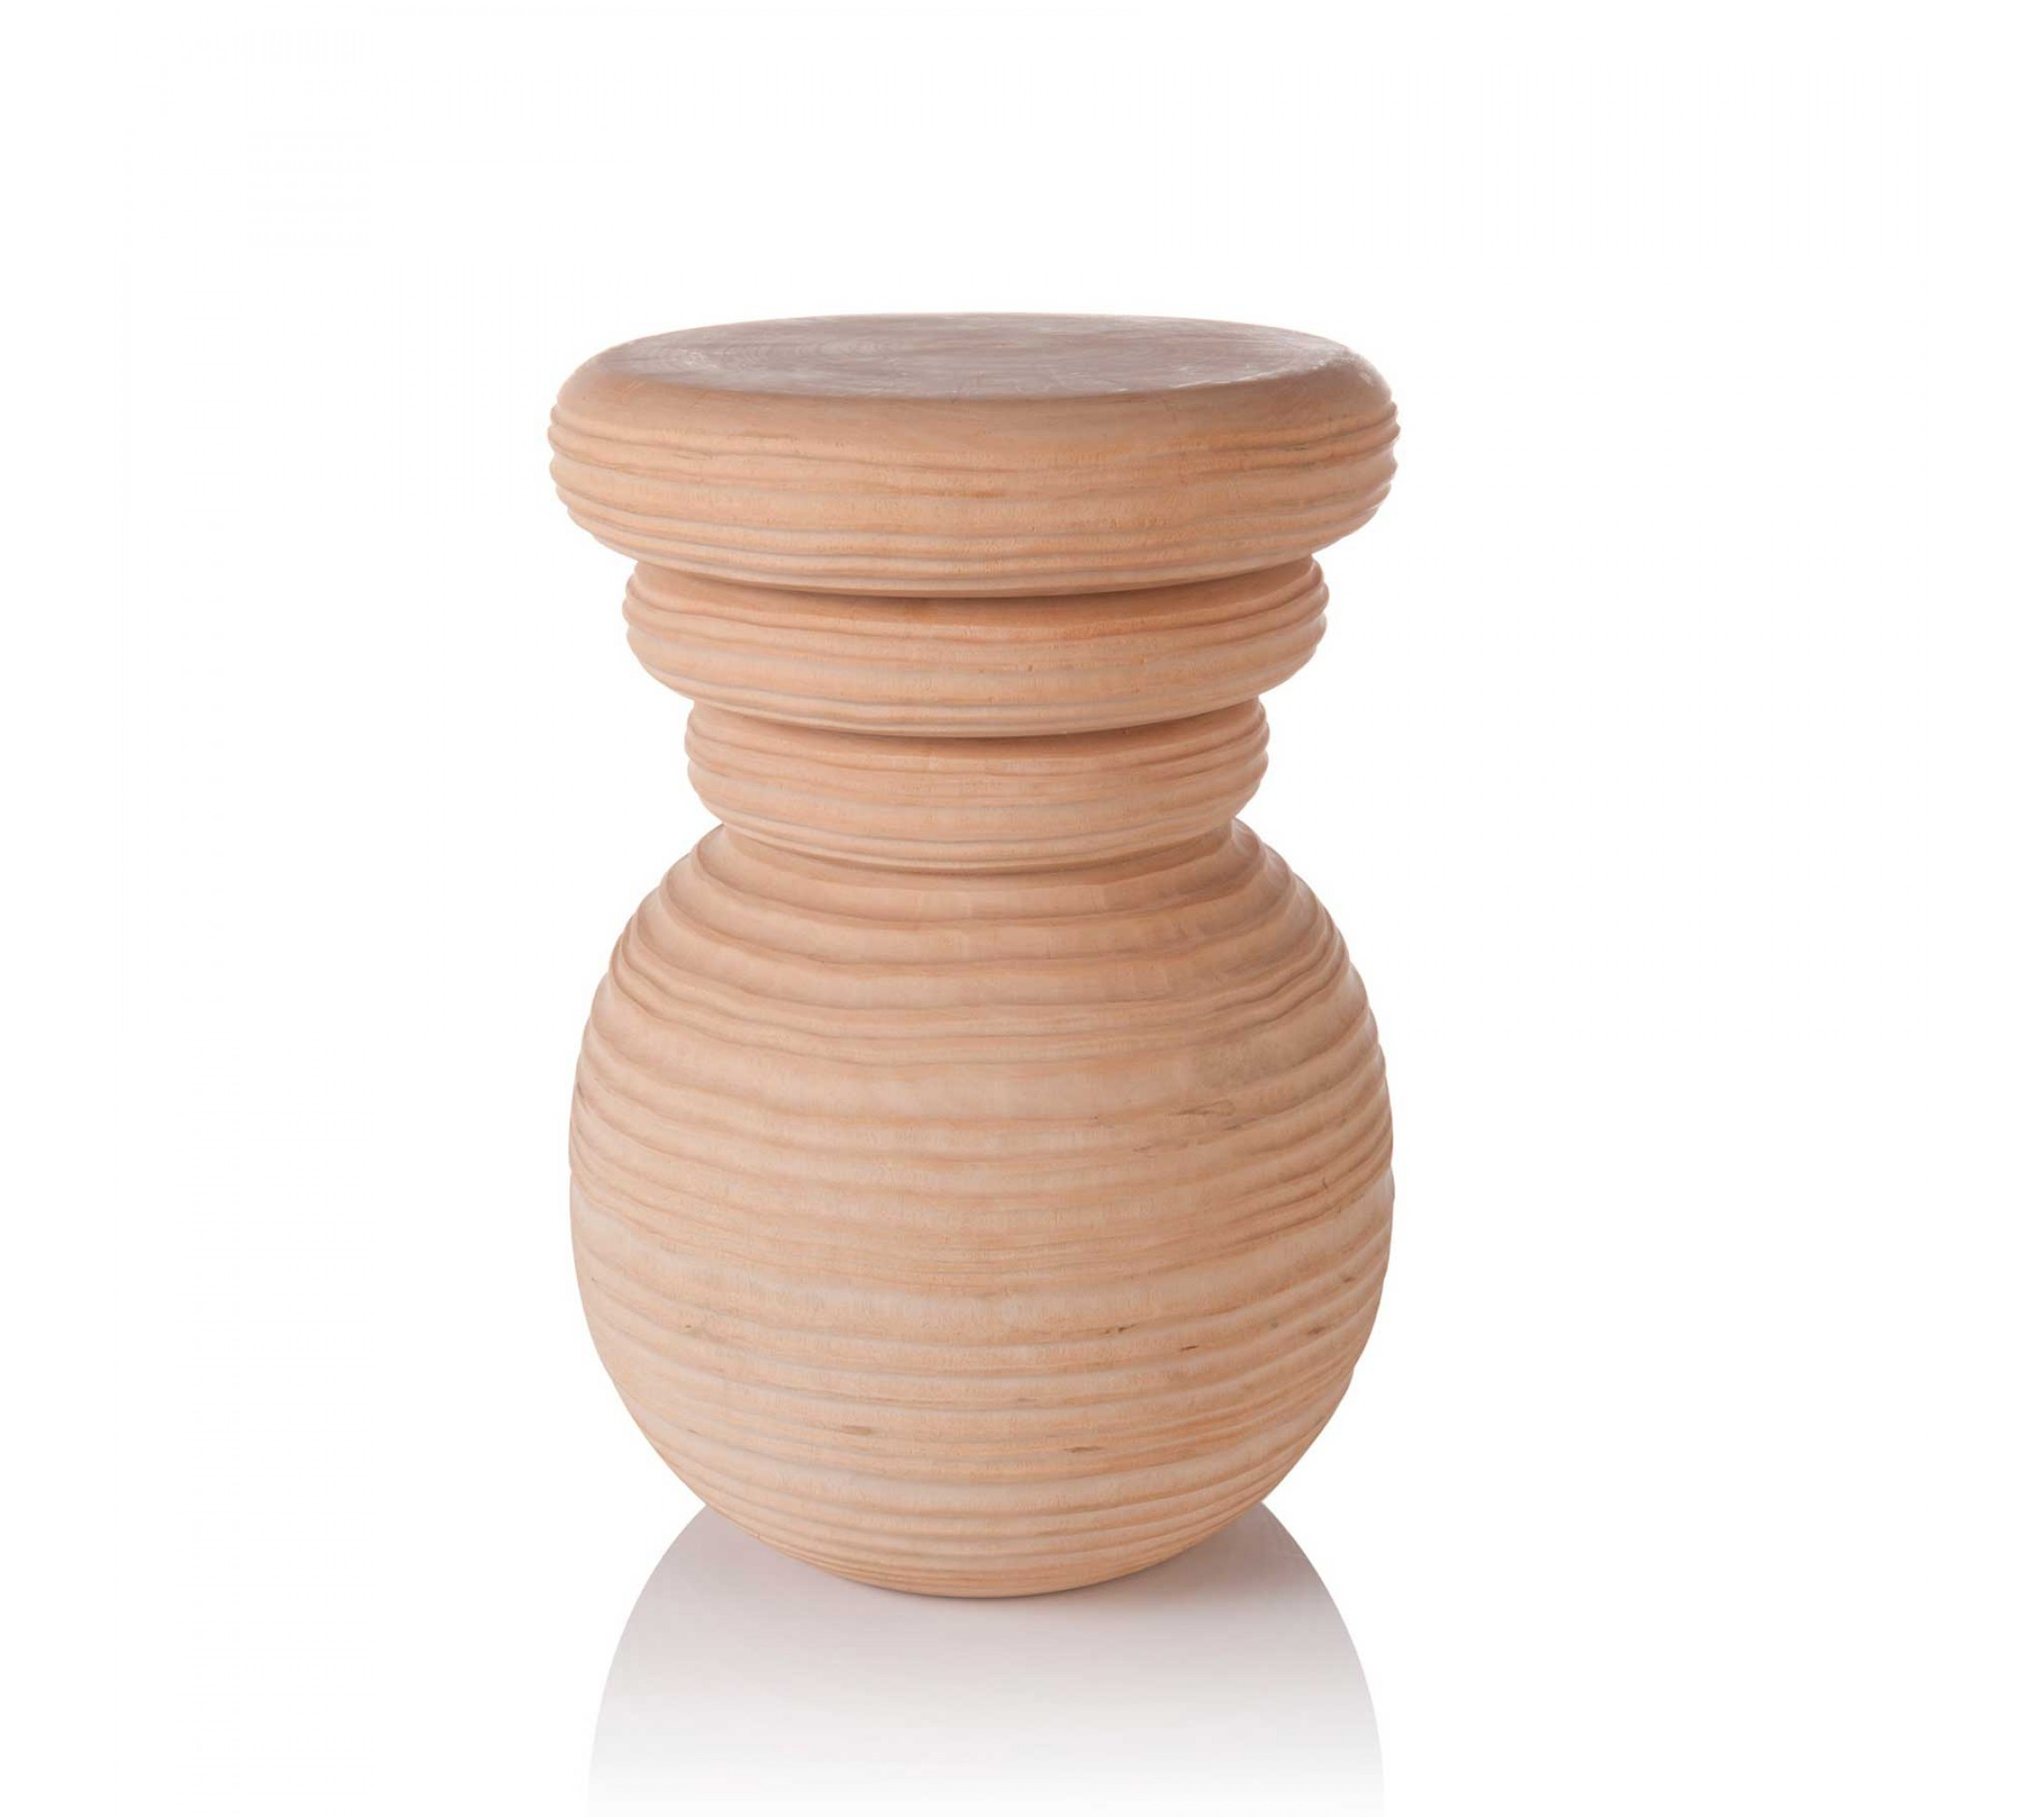 Hocker Massivholz - Round Wooden